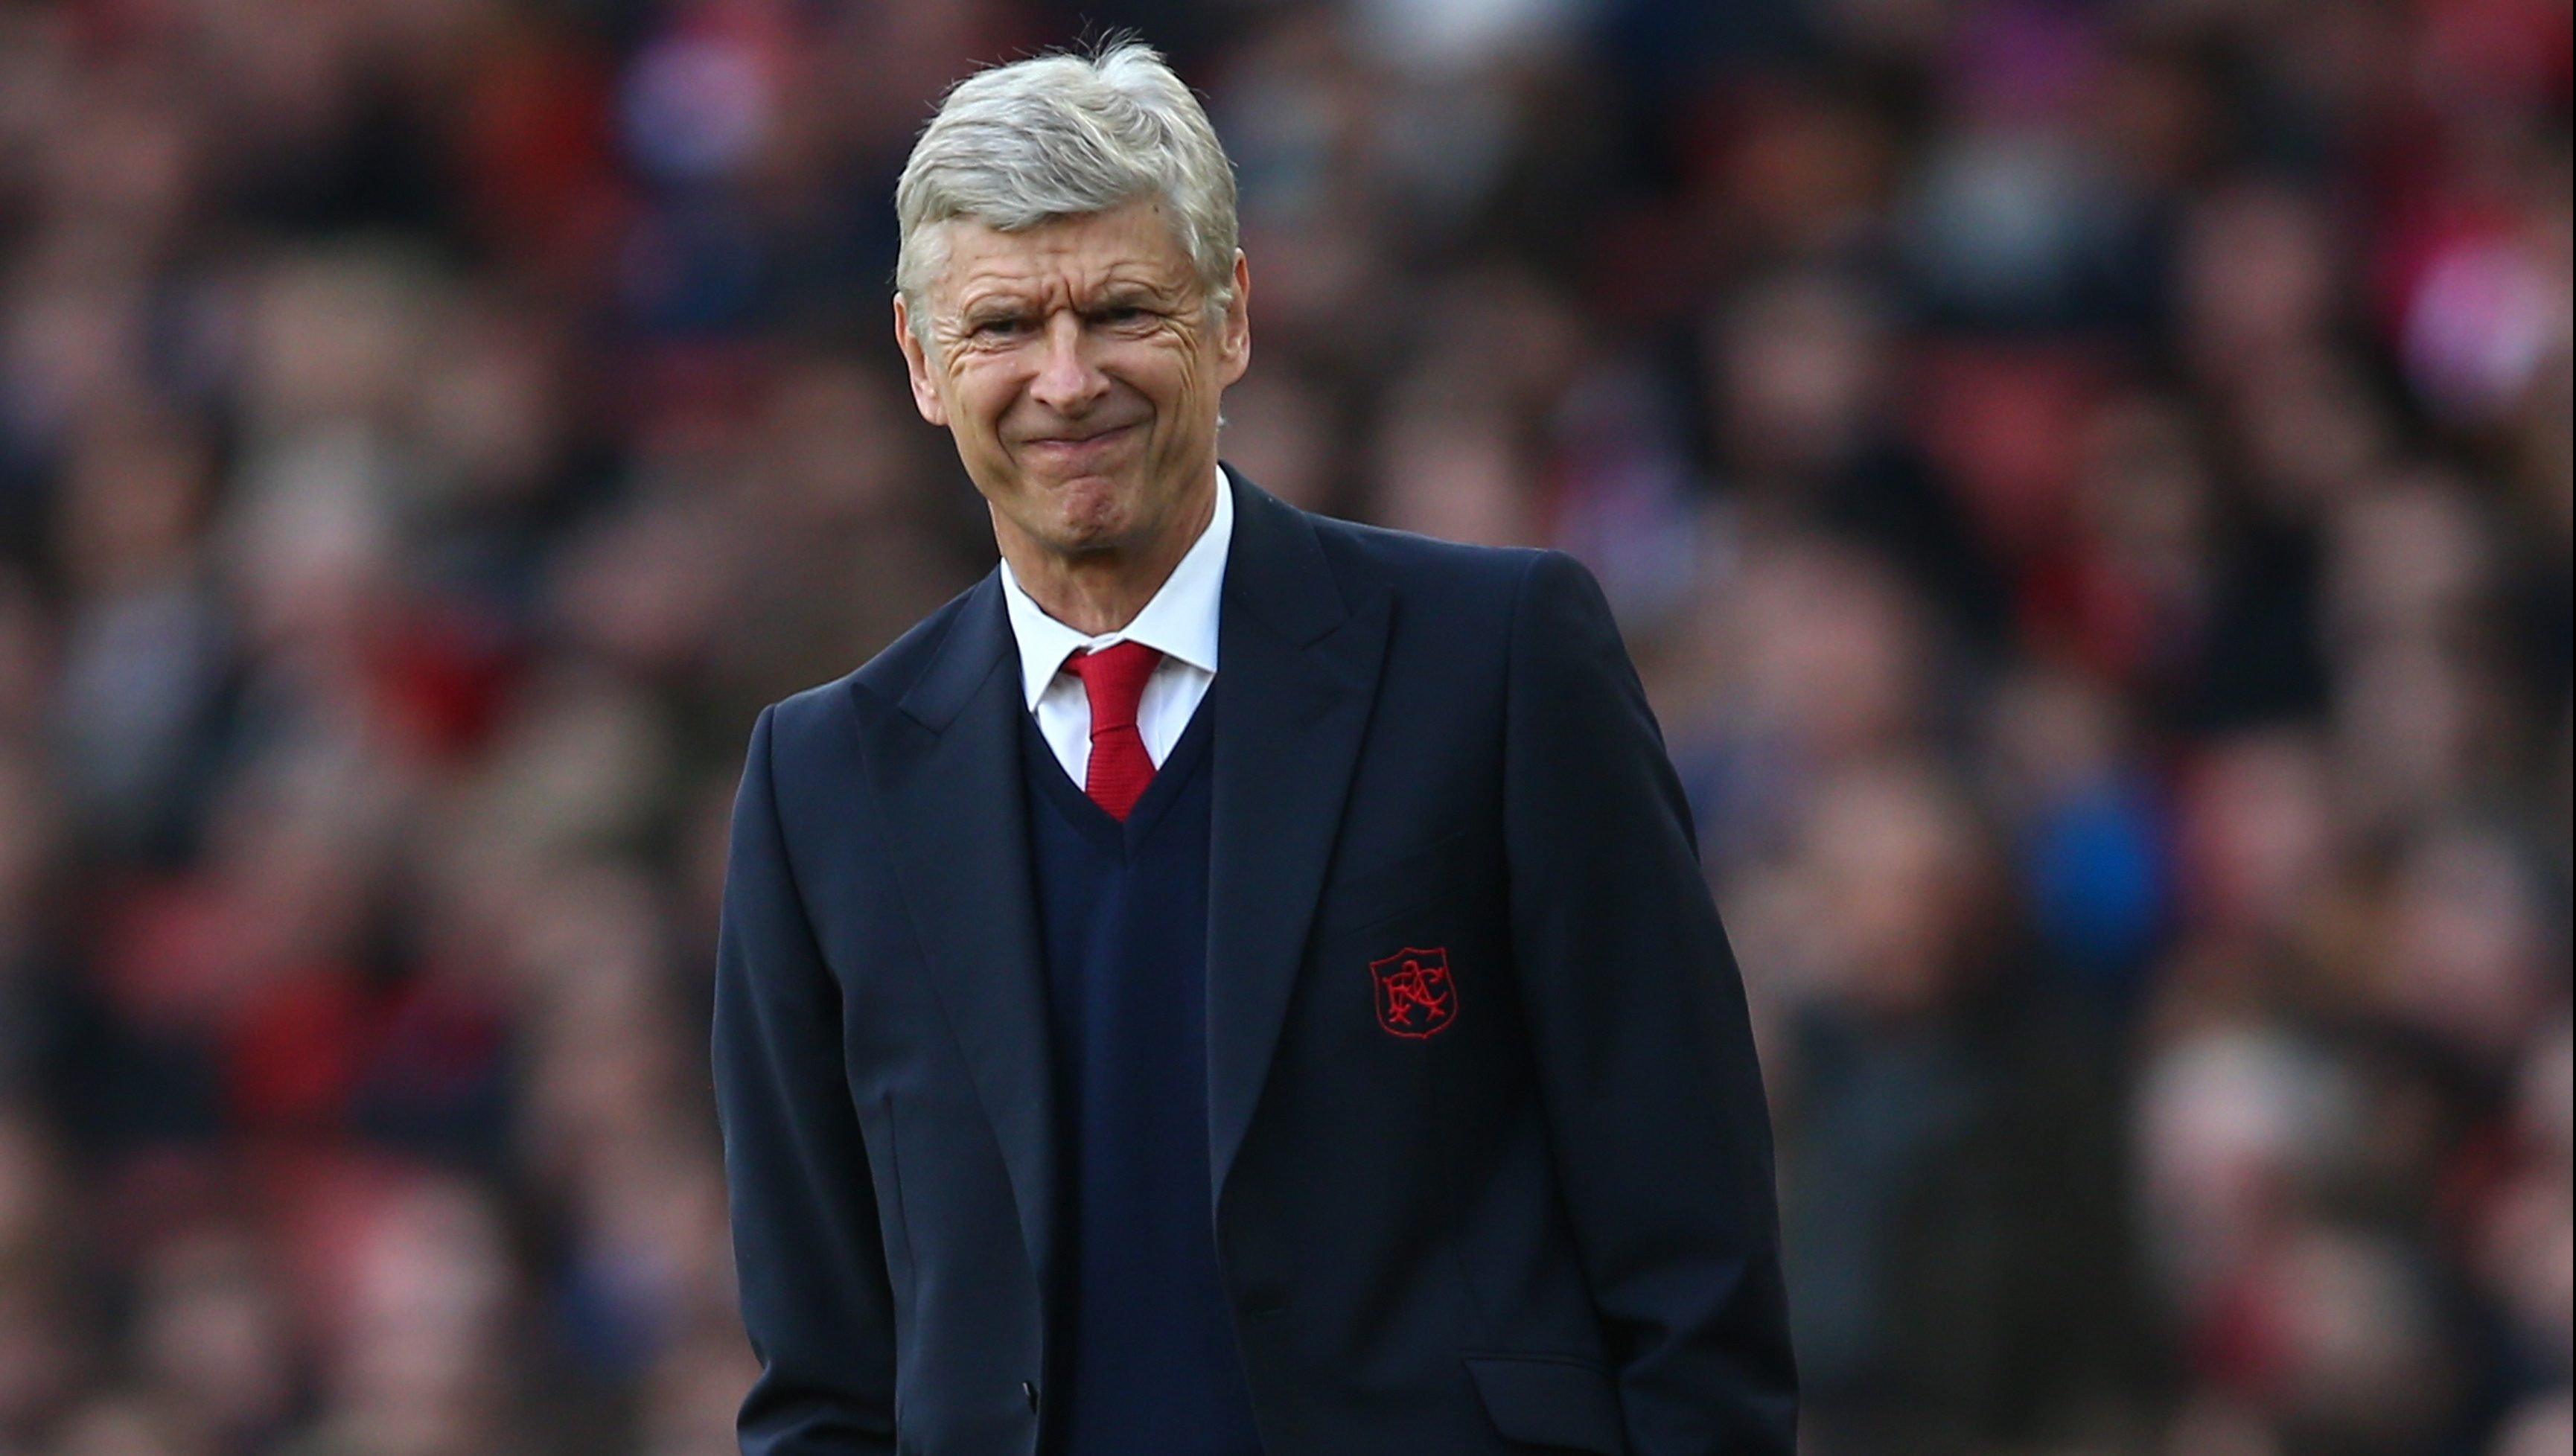 LONDON, ENGLAND - APRIL 30: Arsene Wenger Manager of Arsenal looks on during the Barclays Premier League match between Arsenal and Norwich City at The Emirates Stadium on April 30, 2016 in London, England (Photo by Paul Gilham/Getty Images)